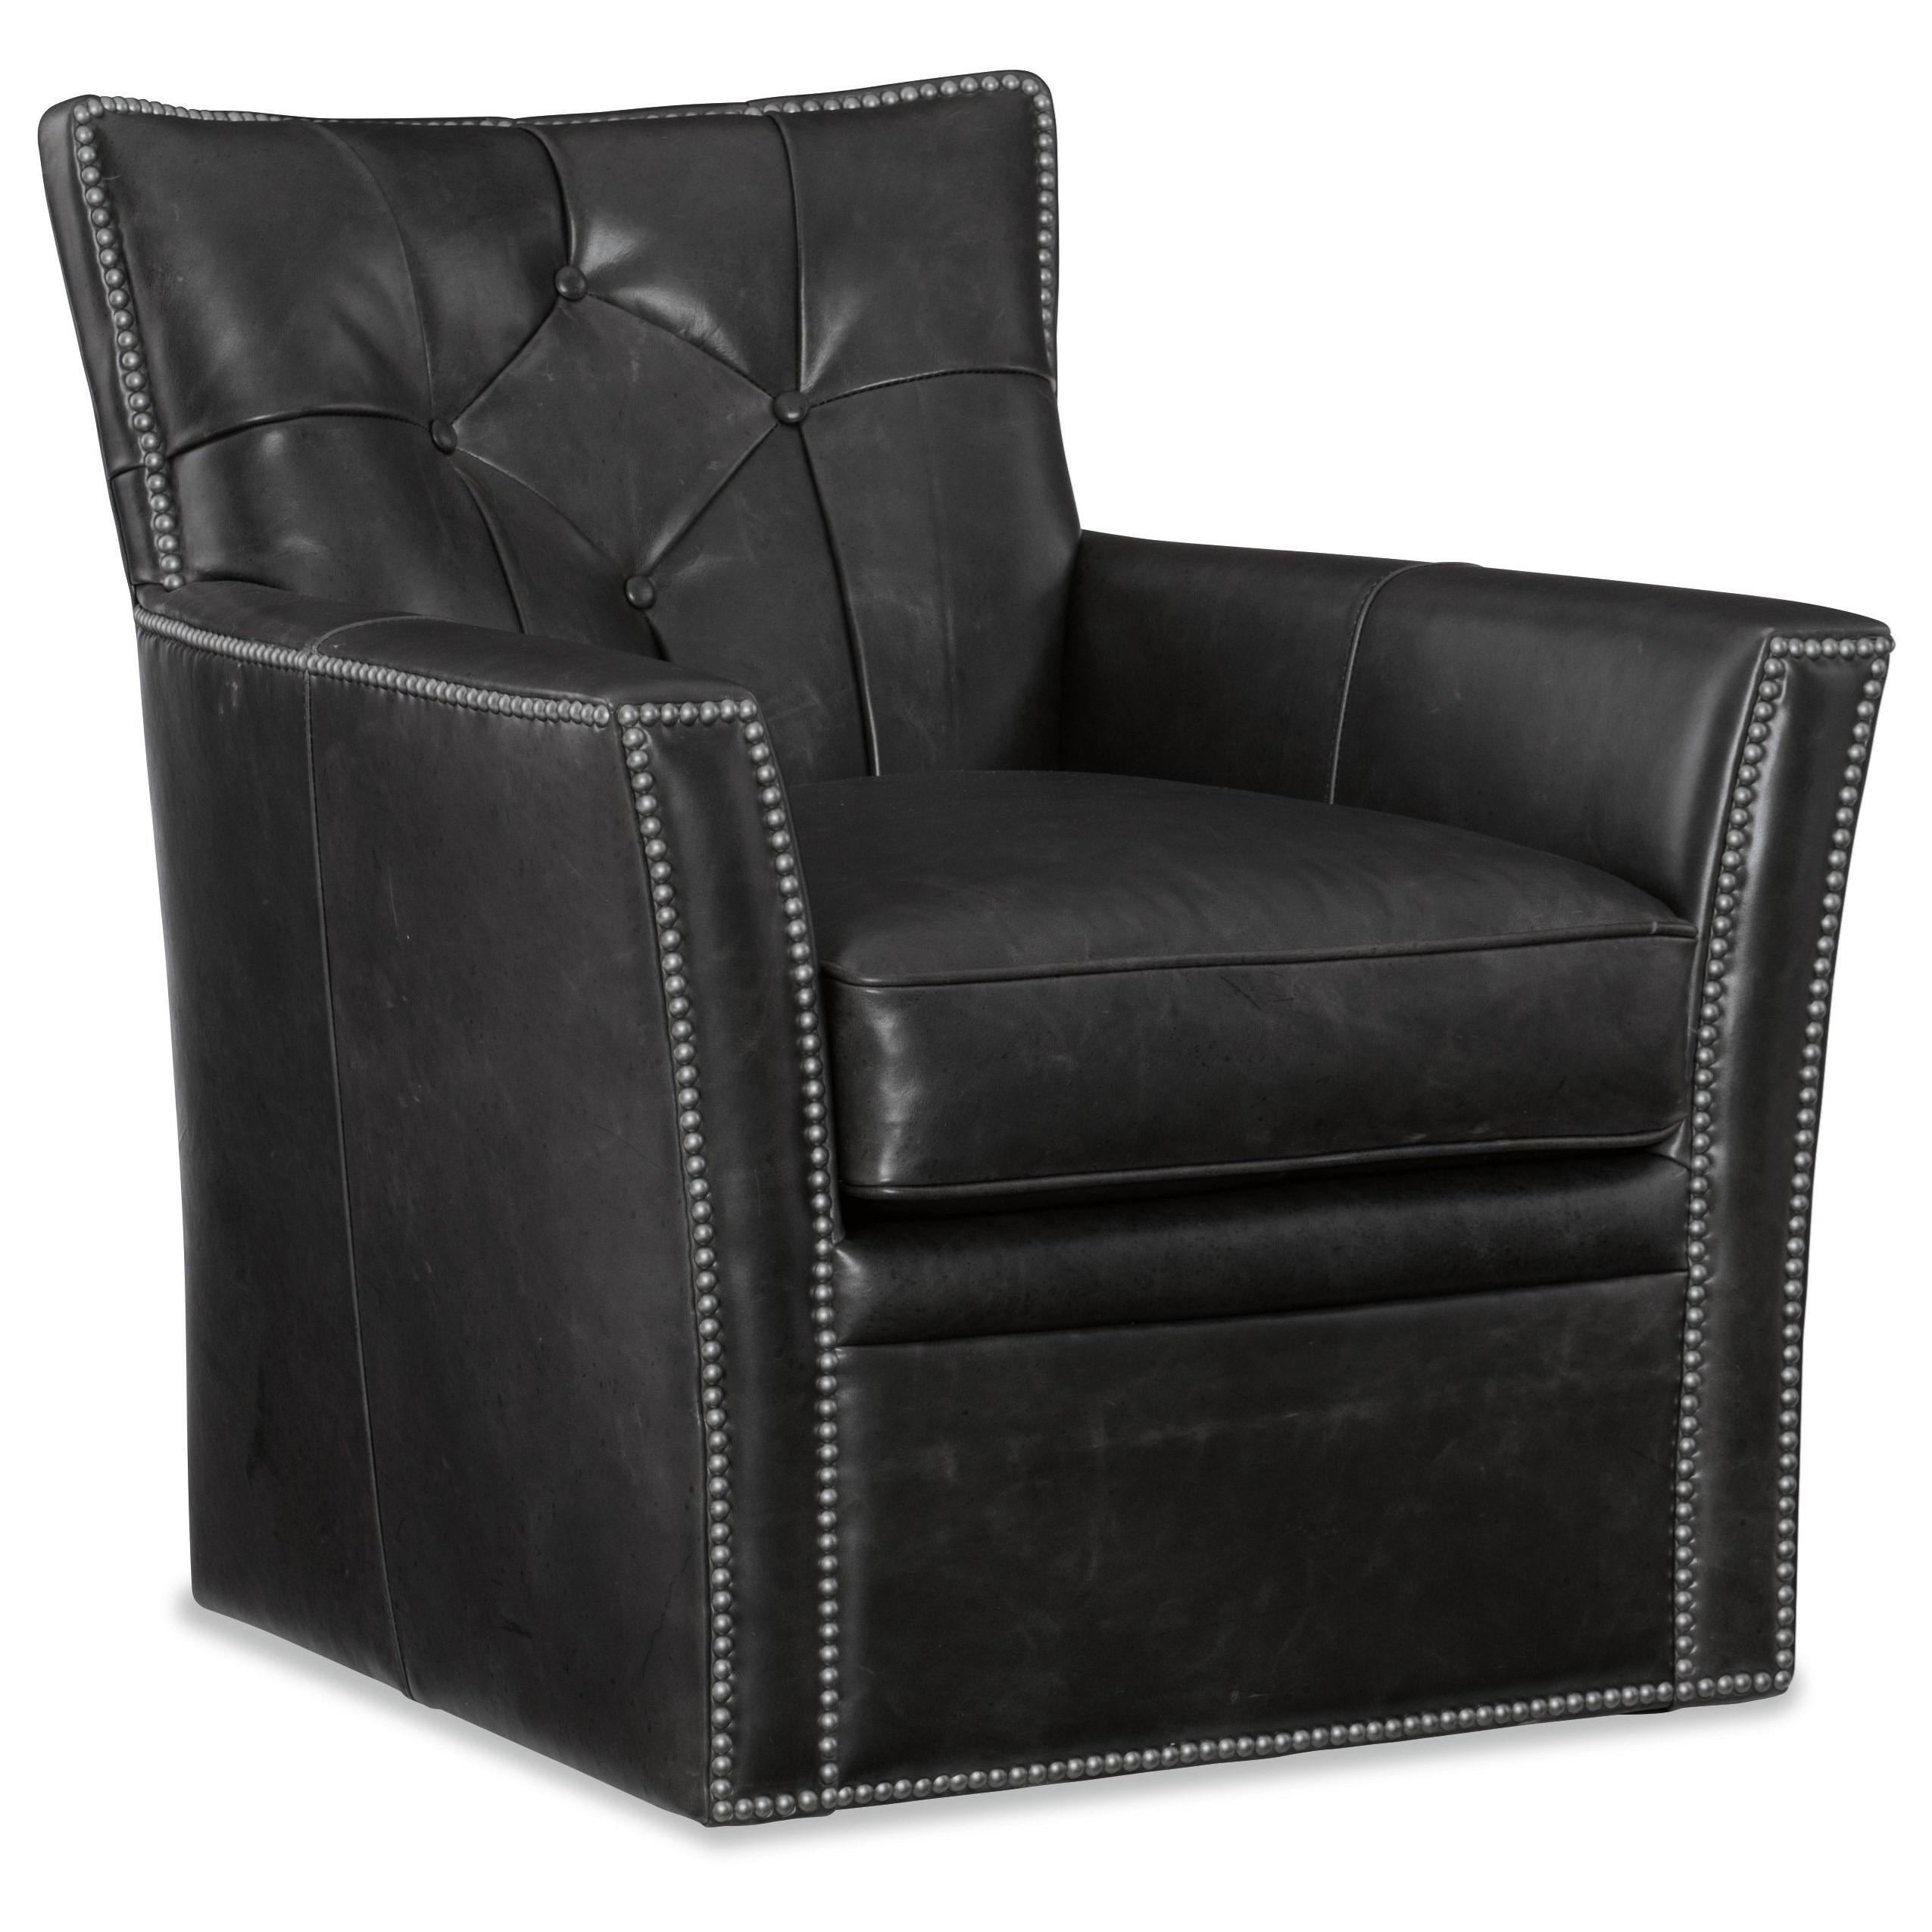 Transitional Leather Swivel Club Chair with Tufted Back and Nailheads